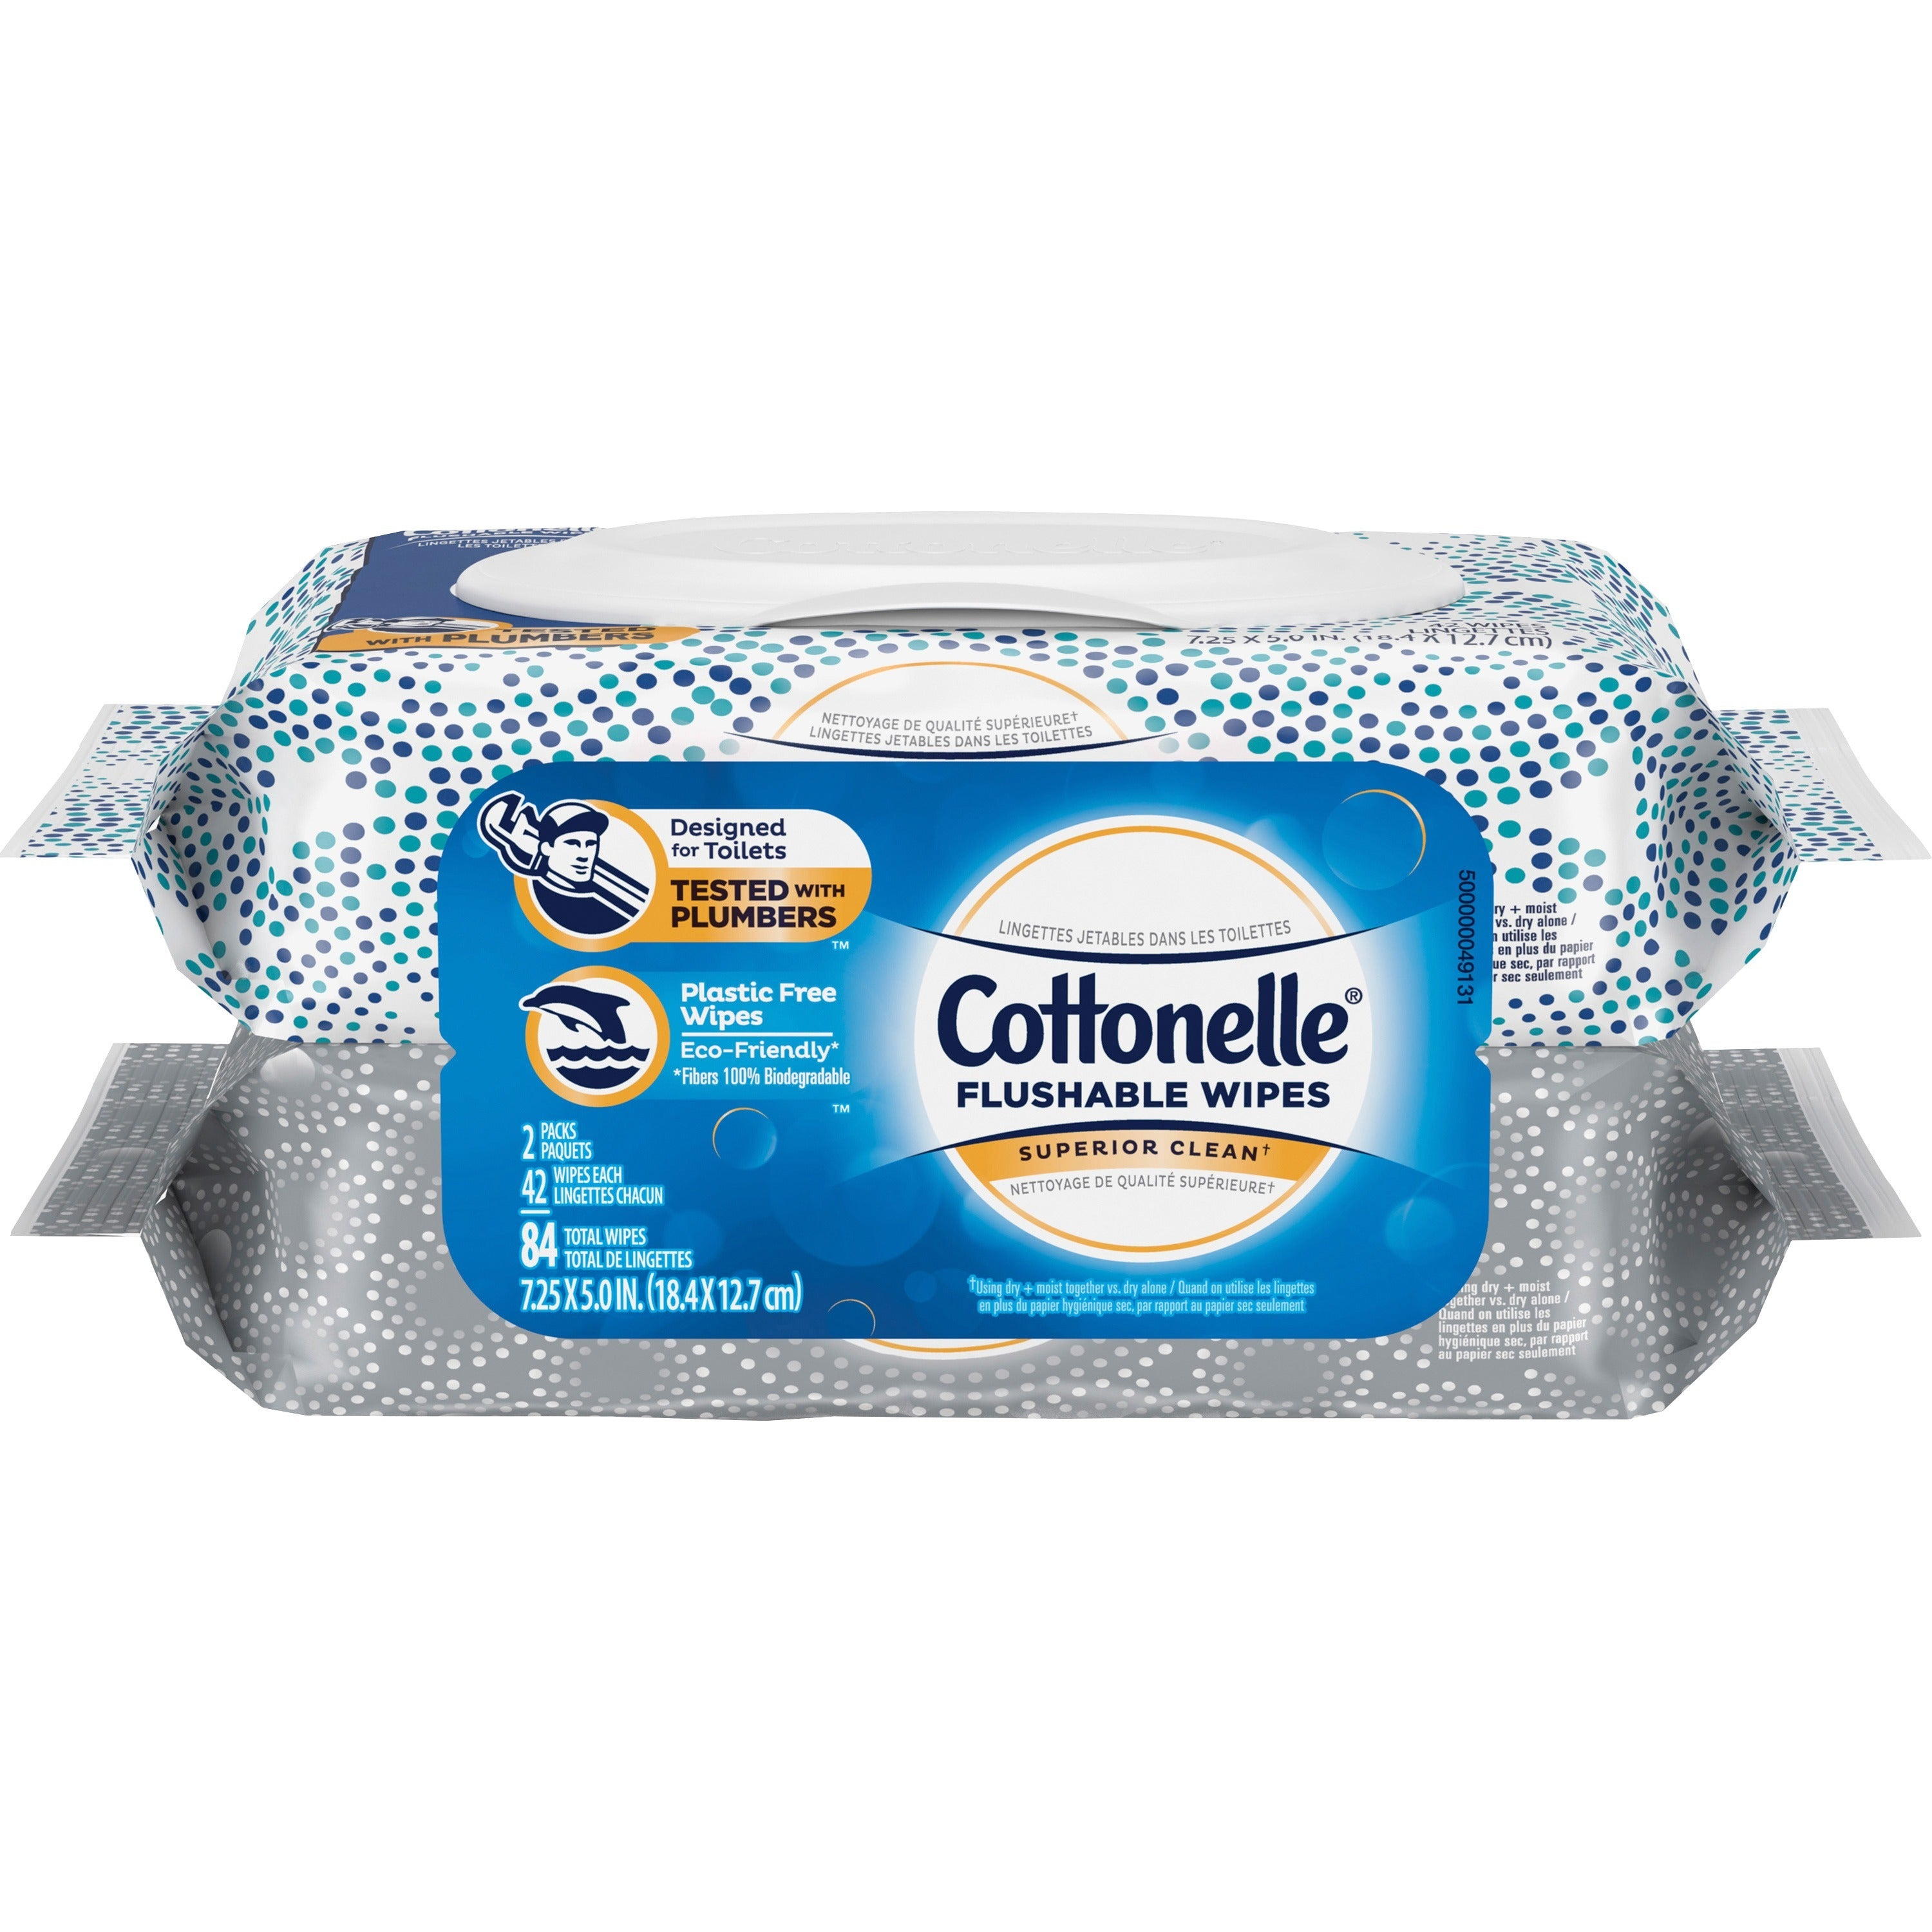 Cottonelle Flushable Wet Wipes Flip-Top Pack 84ct- 2 Pouches (42 each)